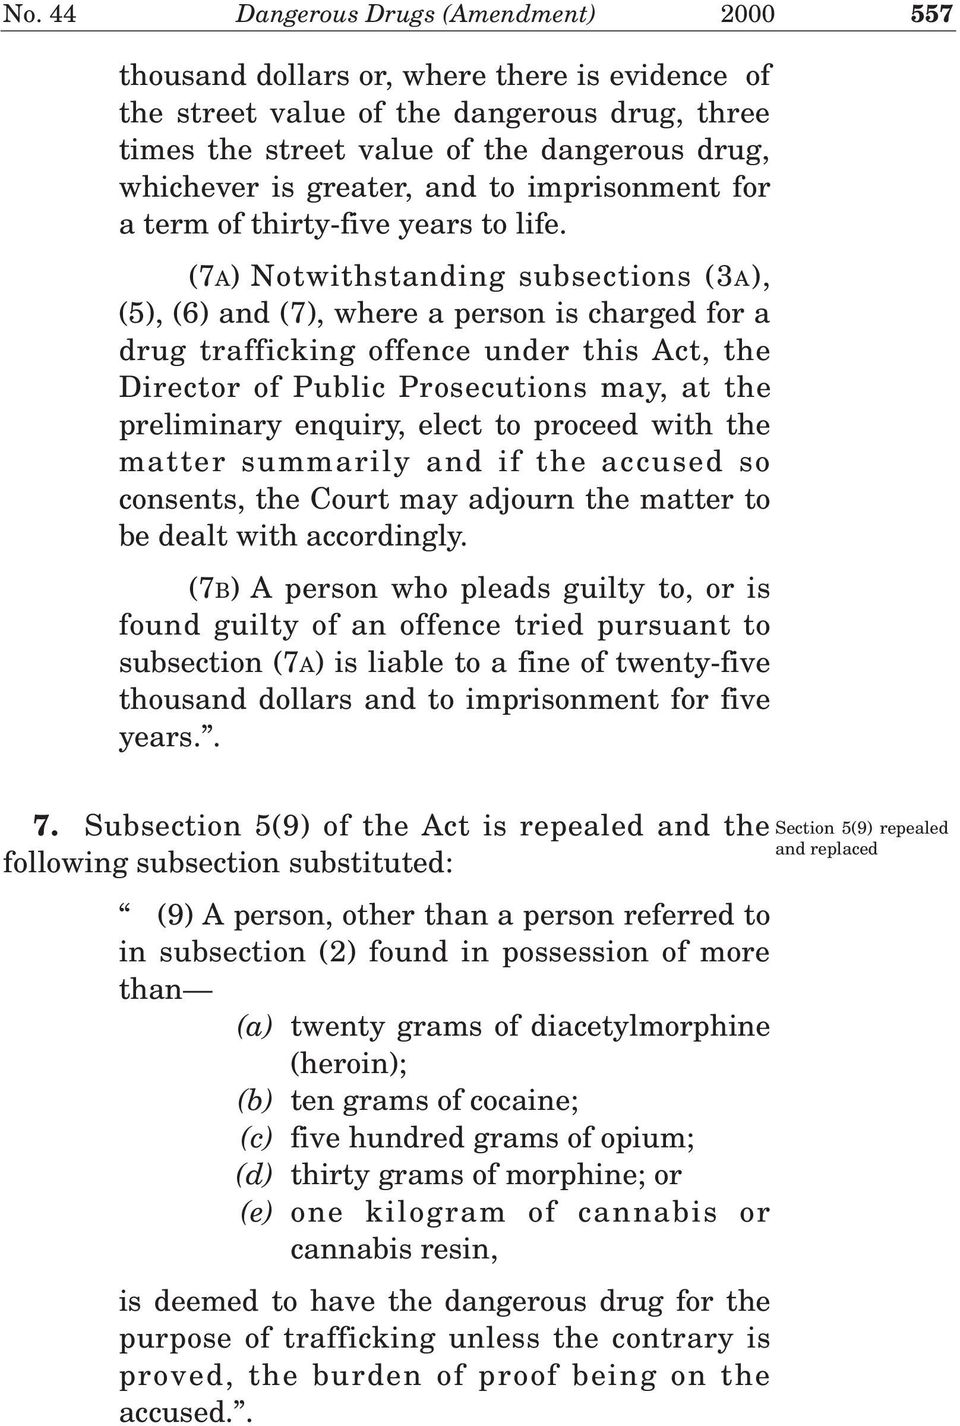 (7A) Notwithstanding subsections (3A), (5), (6) and (7), where a person is charged for a drug trafficking offence under this Act, the Director of Public Prosecutions may, at the preliminary enquiry,